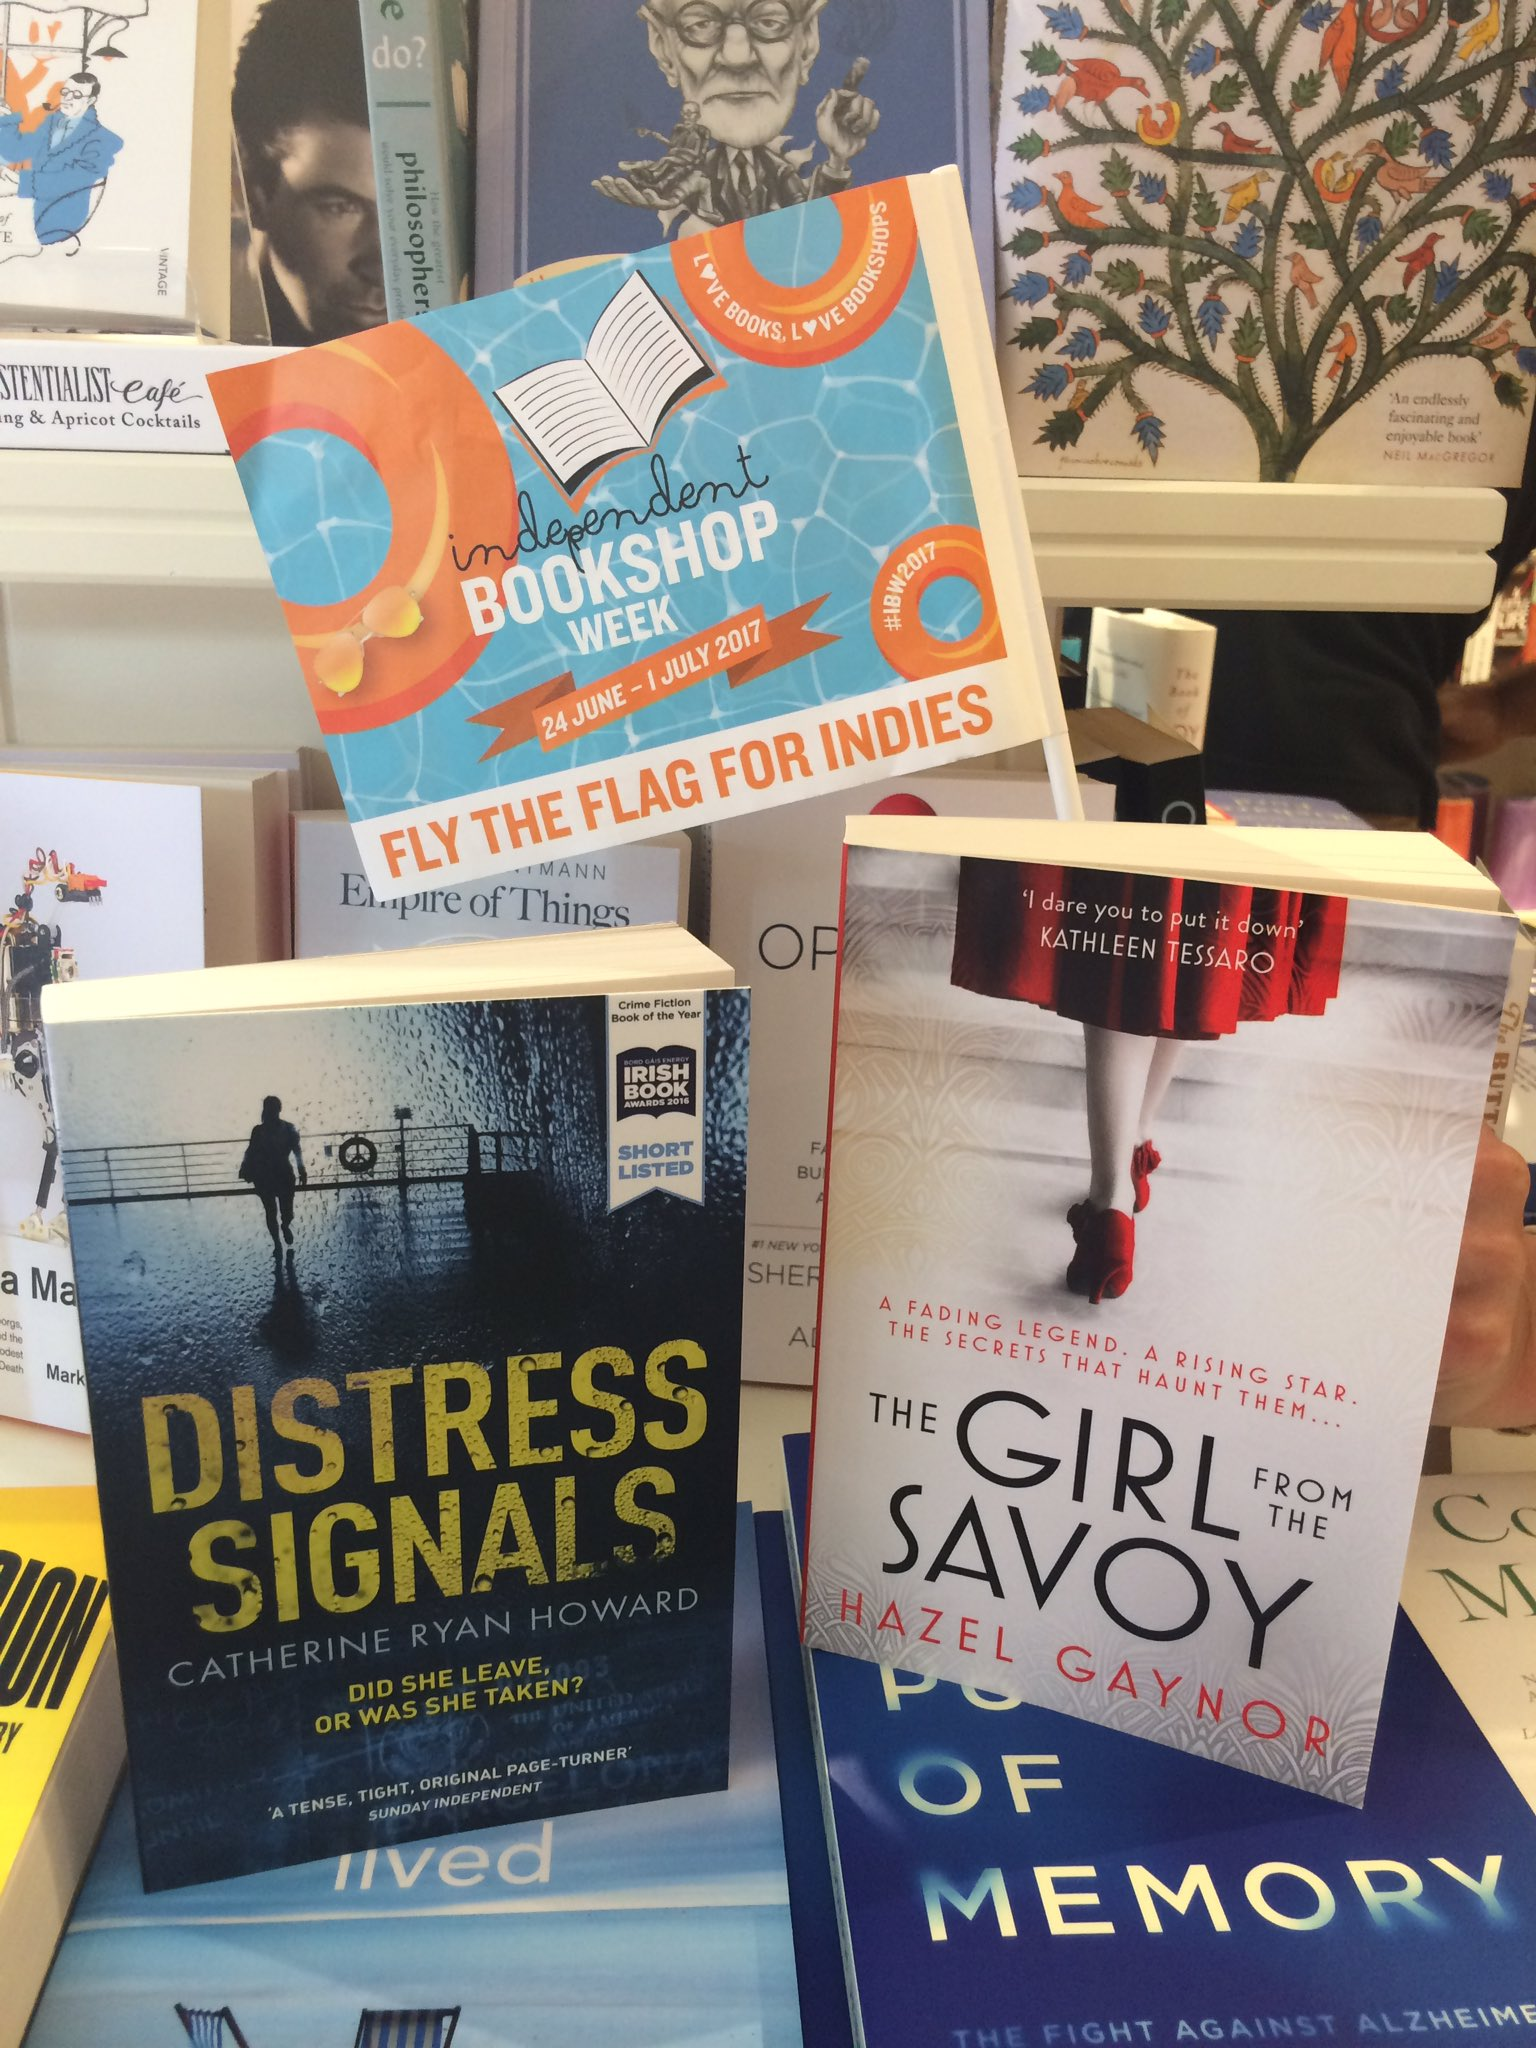 Signed copies of #TheGirFromTheSavoy & #DistressSignals are now in stock @CompanyofBooks! #ibw2017 #ibw17 #Bookshopcrawl https://t.co/xHTSZmL1e1